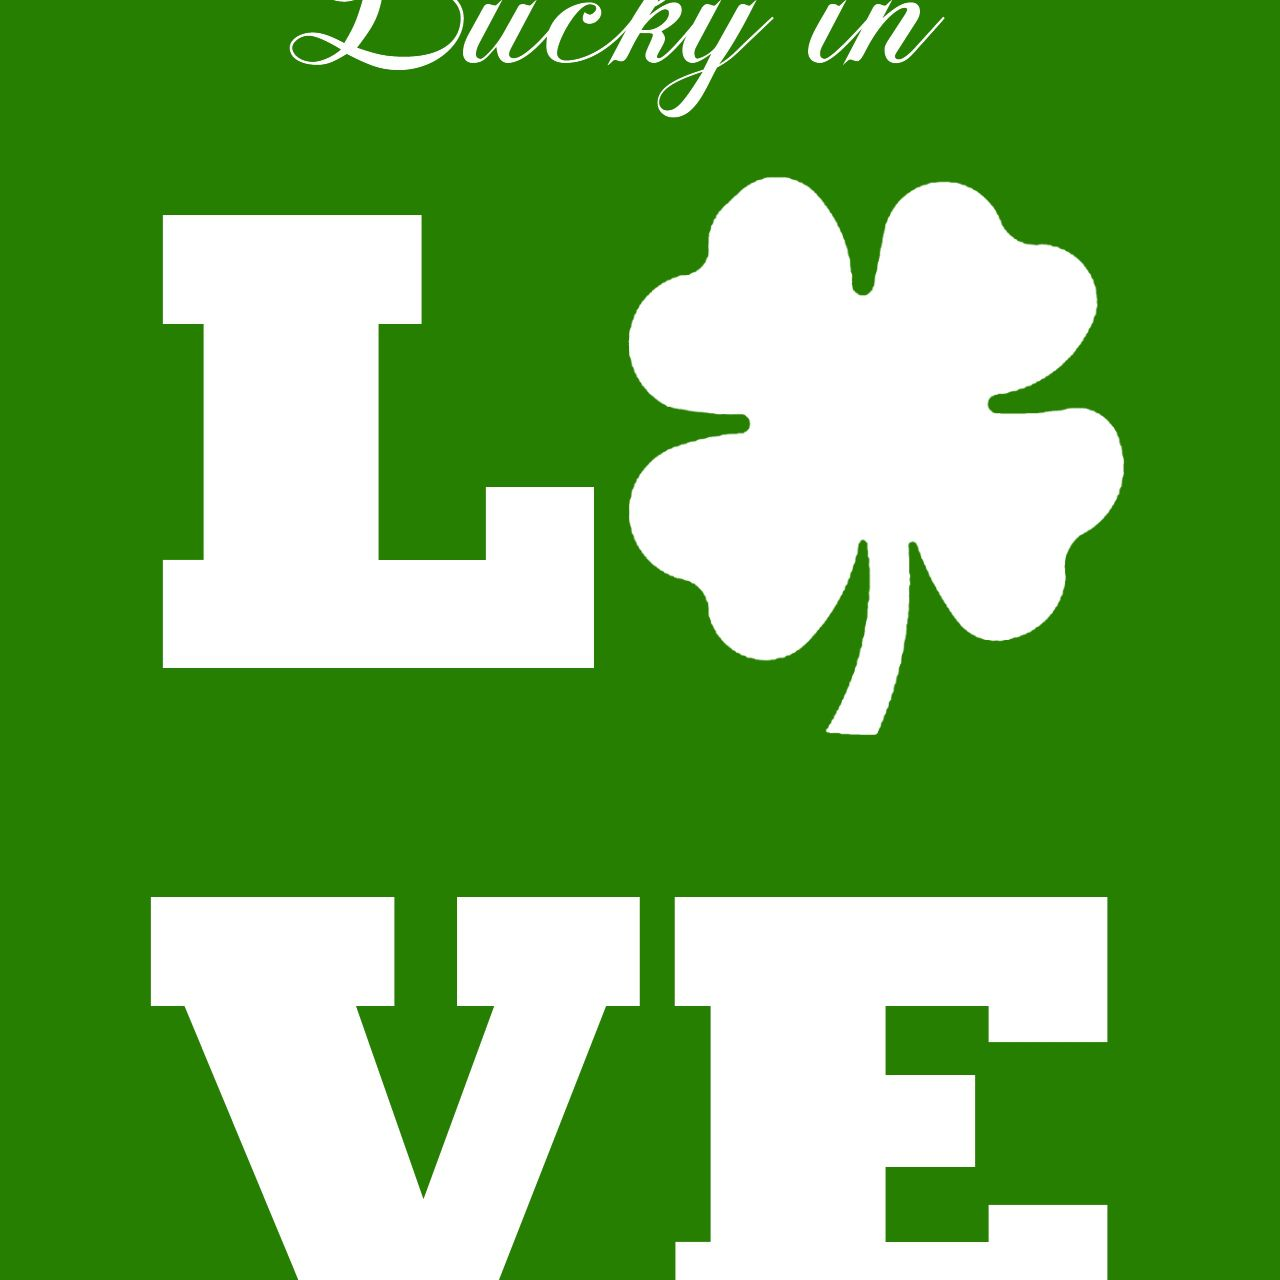 12 Free Diy St Patrick S Day Decorations You Can Print